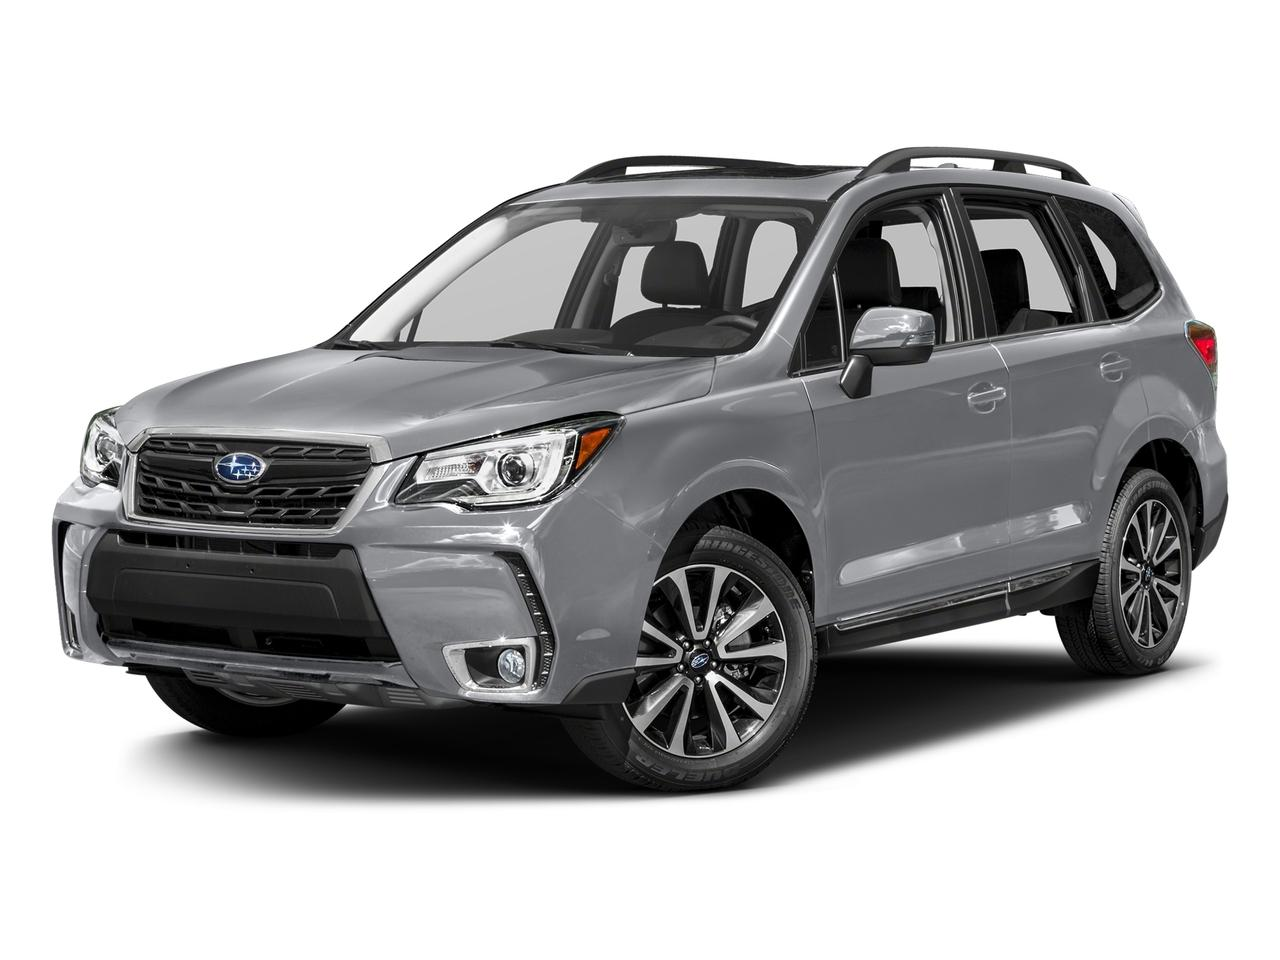 2017 Subaru Forester Vehicle Photo in Quakertown, PA 18951